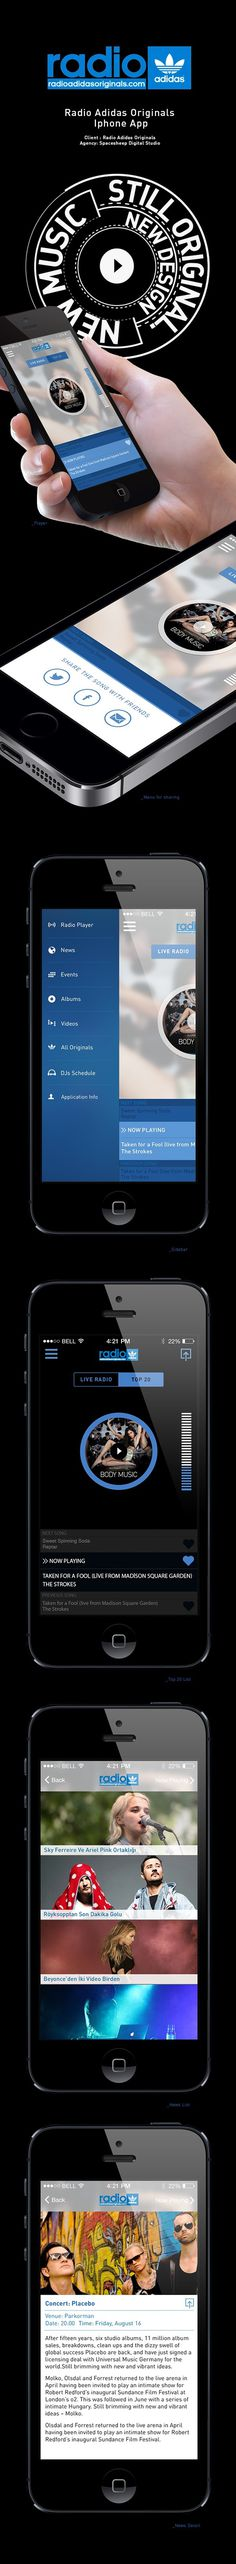 Radio Adidas Originals IOS App V 2.0 on Behance #radio #adidas #originals #design #yildirim #ui #yasemin #mobile #ios